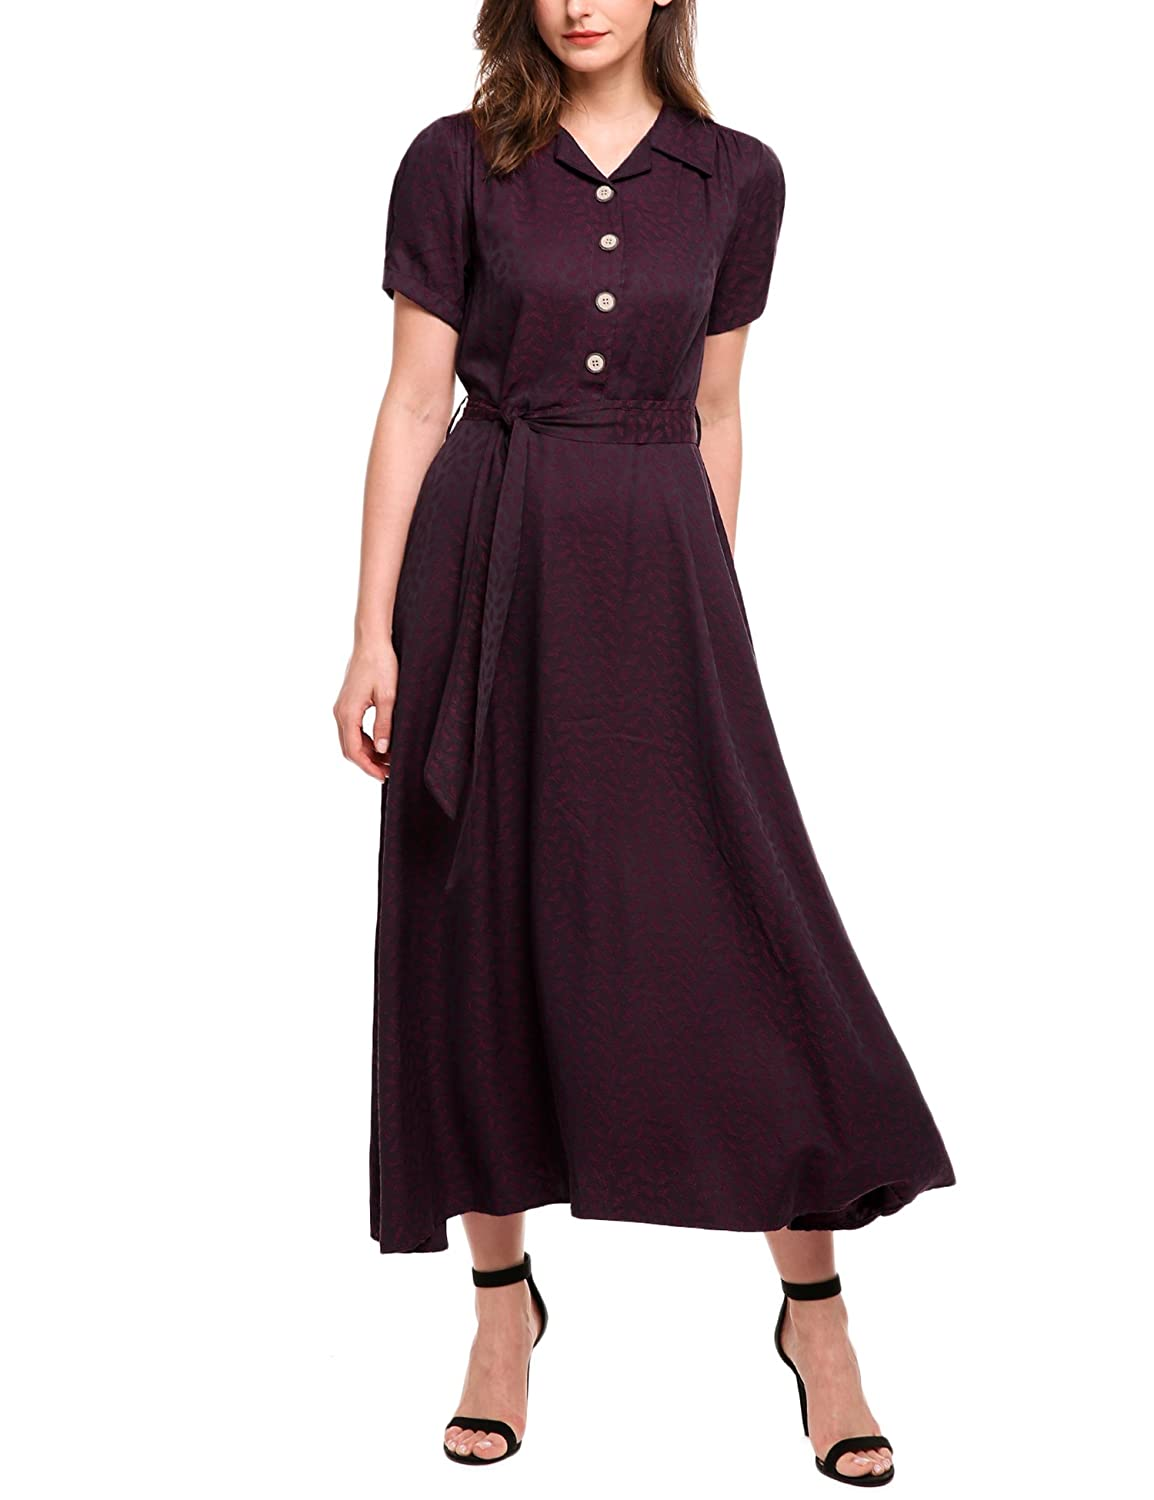 1930s Day Dresses, Afternoon Dresses History ACEVOG Women Vintage Style Turn Down Collar Short Sleeve High Waist Maxi Swing Dress with Belt $38.99 AT vintagedancer.com